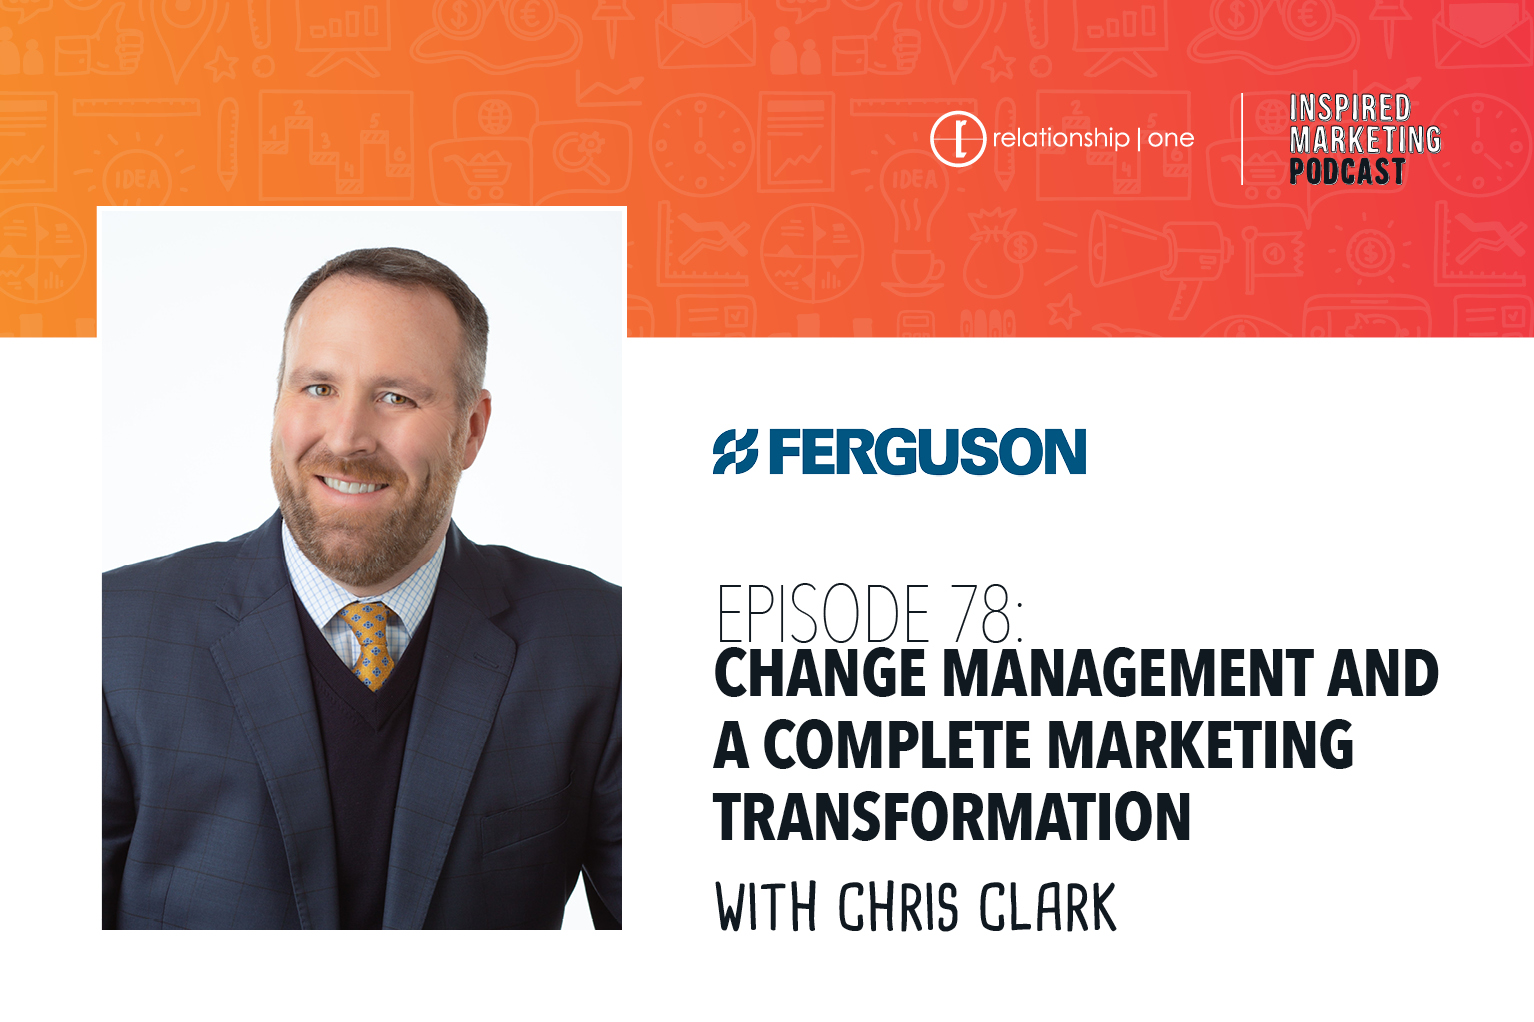 Inspired Marketing: Ferguson's Chris Clark on Change Management and A Complete Marketing Transformation